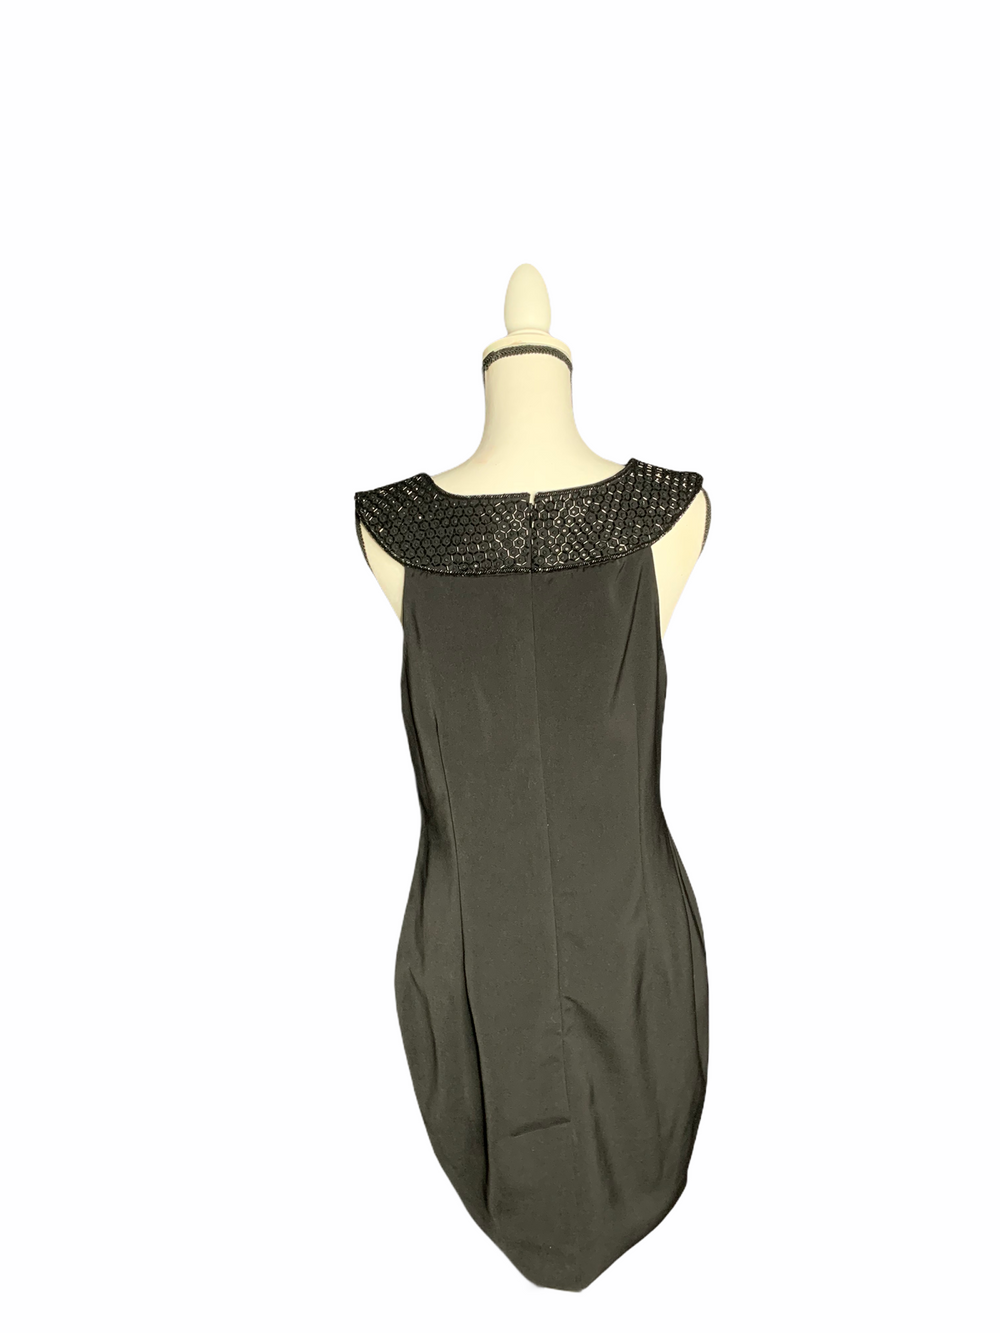 NWT BRUNYA Black mini dress with cleopatra style collar